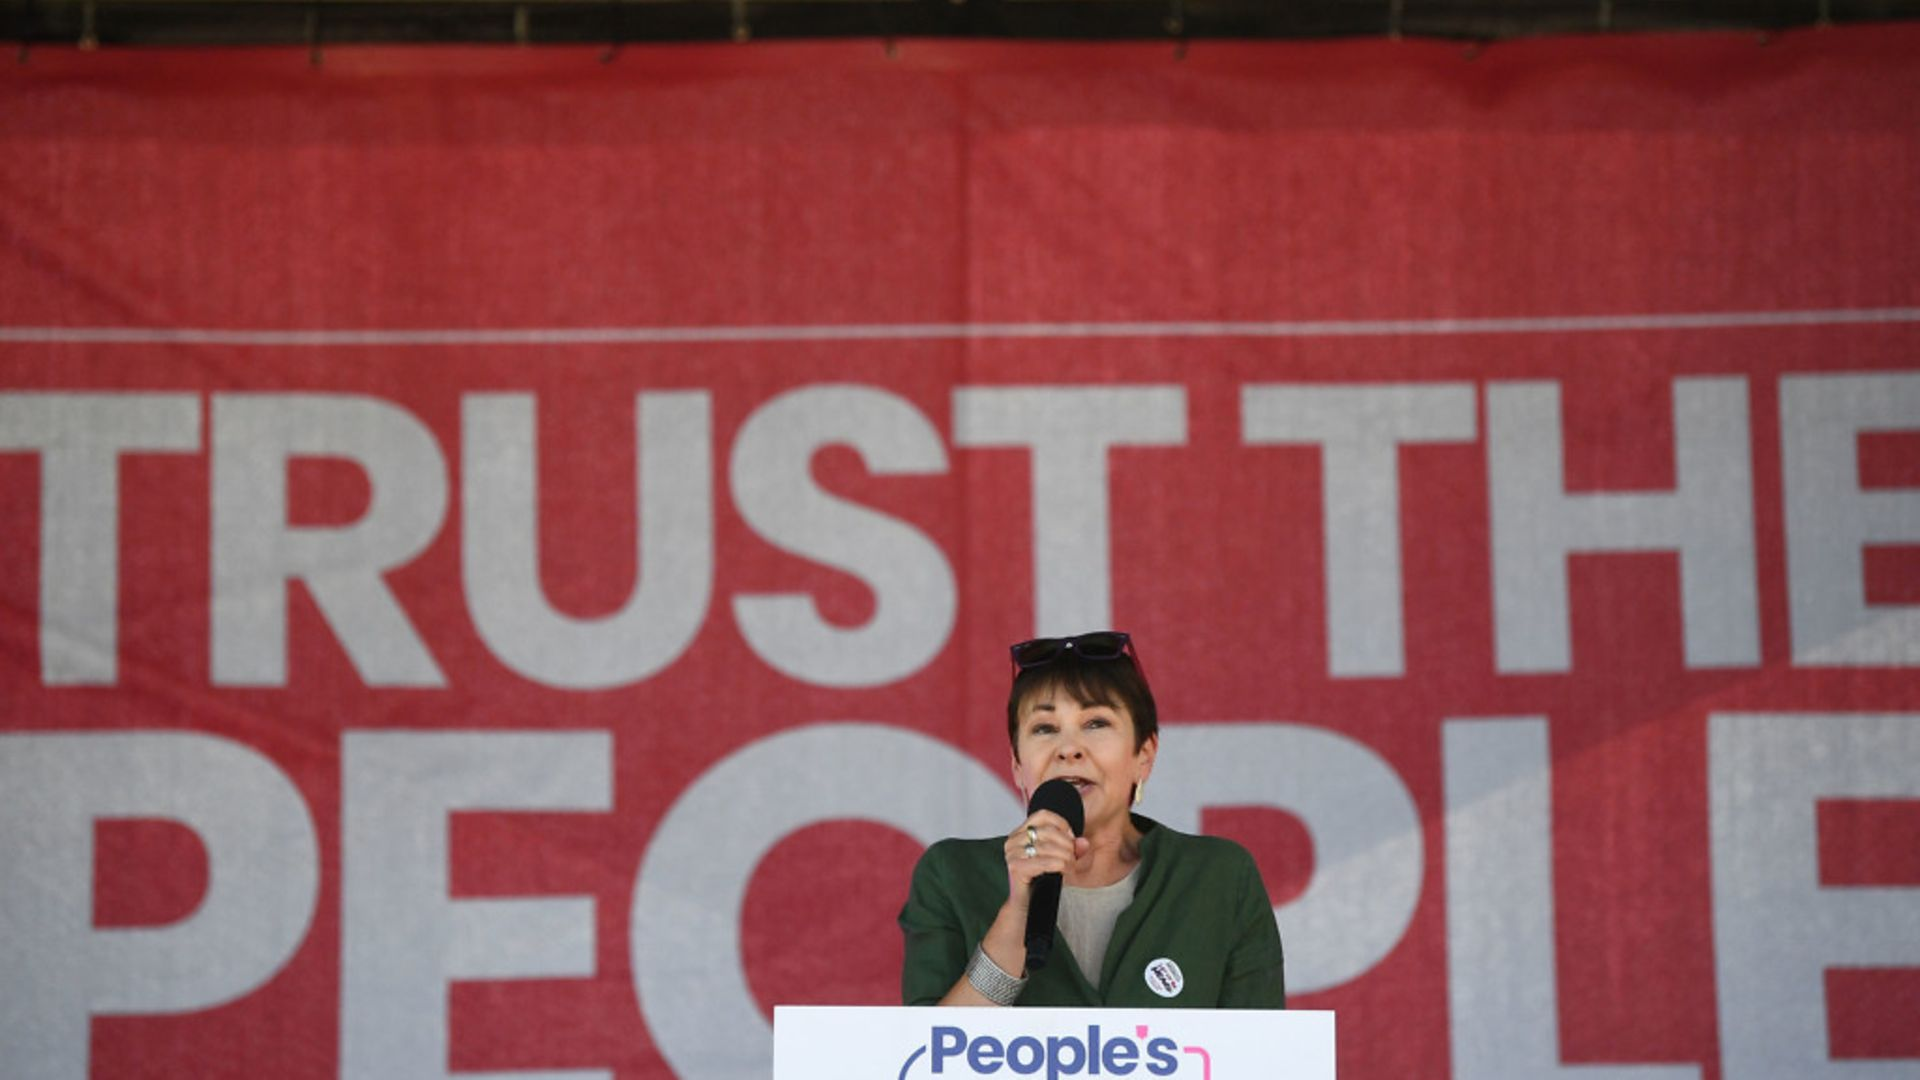 Green Party MP Caroline Lucas speaks at the Anti-Brexit 'Trust the People' march and rally - Credit: PA